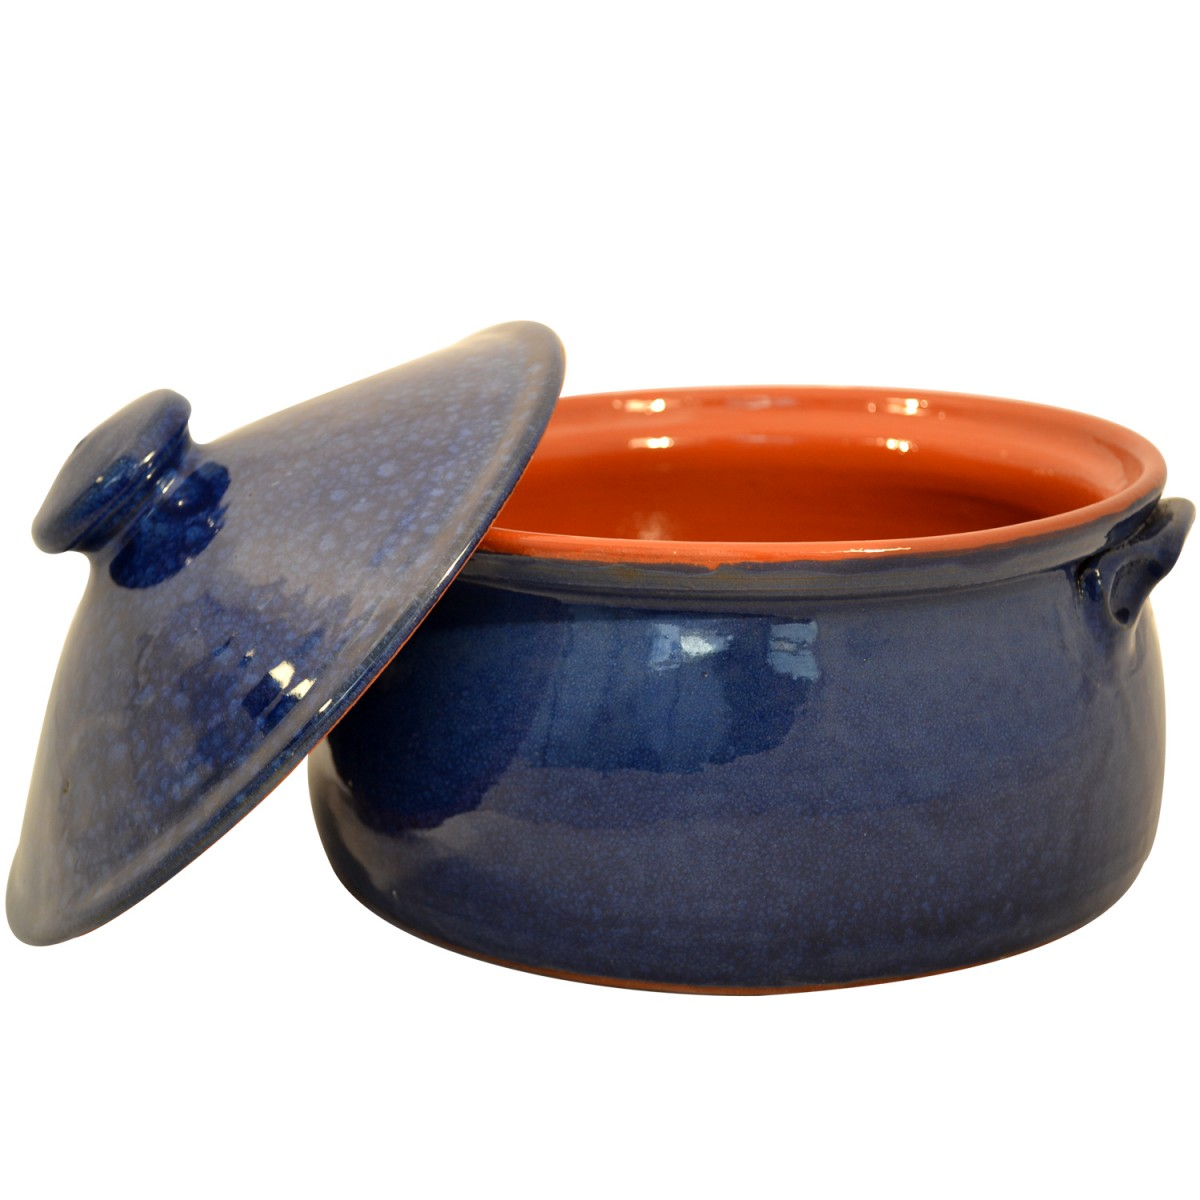 Handmade_Oven-use_Claypot_Blue-1